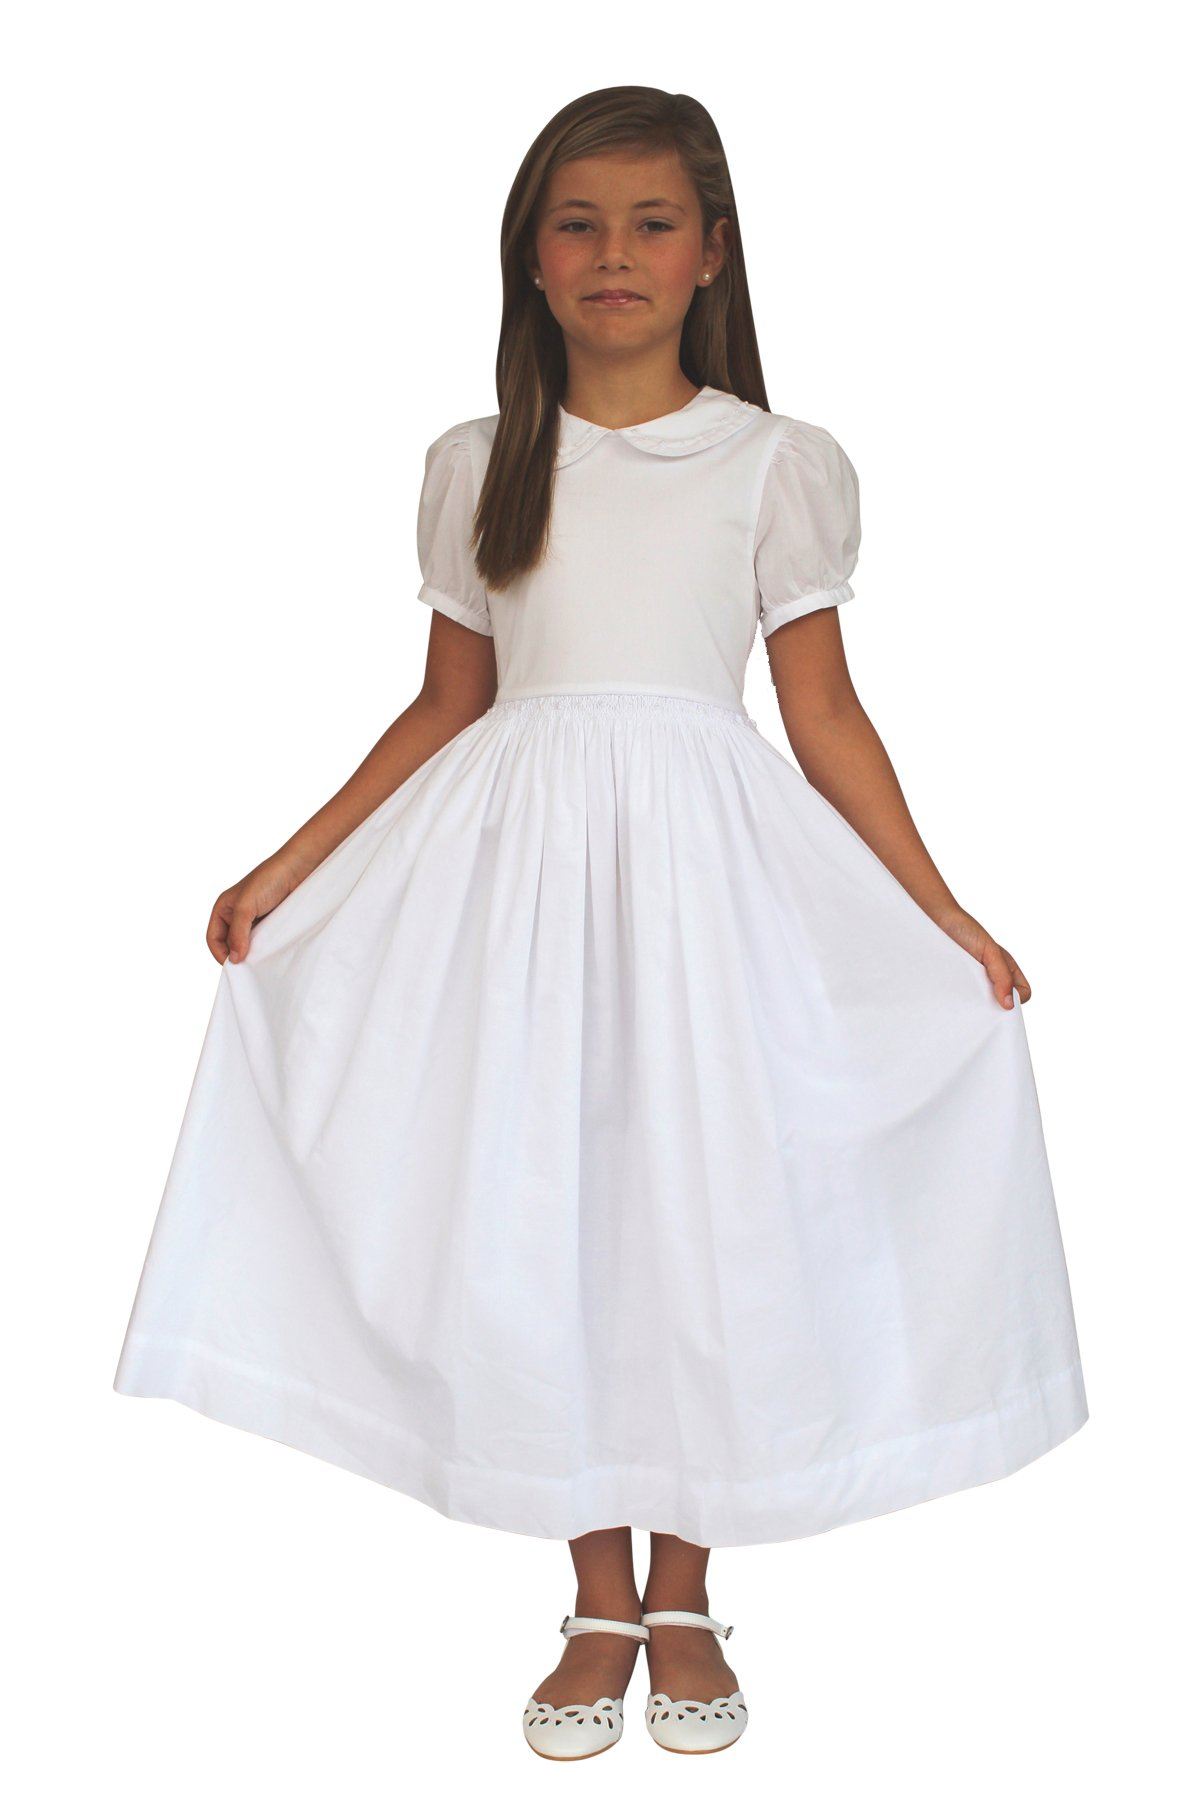 Strasburg Children Mary Classic Girls First Communion Dress Simple White Baptism Dress(10) by Strasburg Children (Image #1)